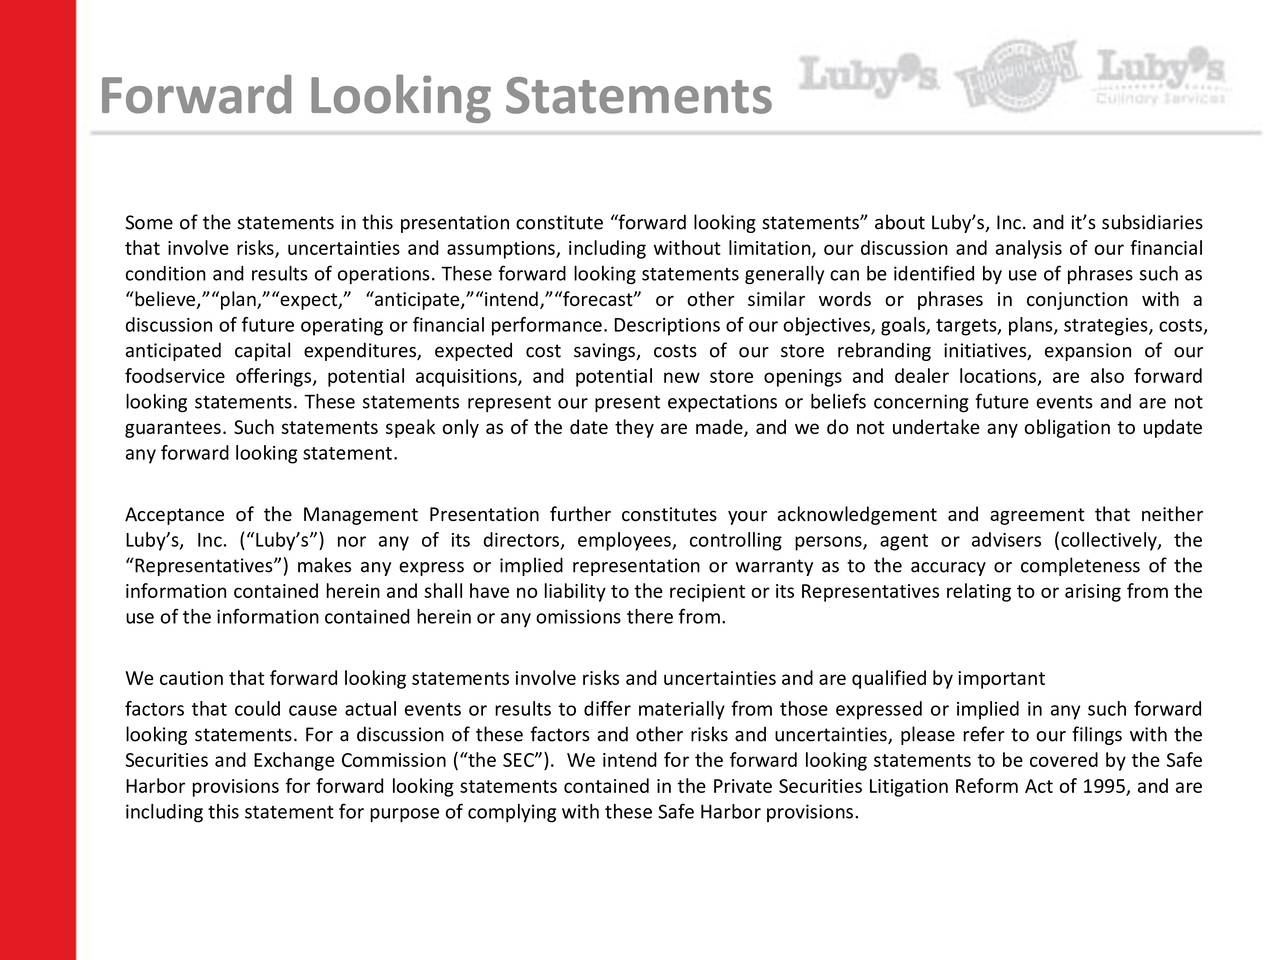 Some of the statements in this presentation constitute forward looking statements about Lubys, Inc. and its subsidiaries that involve risks, uncertainties and assumptions, including without limitation, our discussion and analysis of our financial condition and results of operations. These forward looking statements generally can be identified by use of phrases such as believe,plan,expect, anticipate,intend,forecast or other similar words or phrases in conjunction with a discussion of future operating or financial performance. Descriptions of our objectives, goals, targets, plans, strategies, costs, anticipated capital expenditures, expected cost savings, costs of our store rebranding initiatives, expansion of our foodservice offerings, potential acquisitions, and potential new store openings and dealer locations, are also forward looking statements. These statements represent our present expectations or beliefs concerning future events and are not guarantees. Such statements speak only as of the date they are made, and we do not undertake any obligation to update any forward looking statement. Acceptance of the Management Presentation further constitutes your acknowledgement and agreement that neither Lubys, Inc. (Lubys) nor any of its directors, employees, controlling persons, agent or advisers (collectively, the Representatives) makes any express or implied representation or warranty as to the accuracy or completeness of the information contained herein and shall have no liability to the recipient or its Representatives relating to or arising from the use of the information contained herein or any omissions there from. We caution that forward looking statements involve risks and uncertainties and are qualifiedby important factors that could cause actual events or results to differ materially from those expressed or implied in any such forward looking statements. For a discussion of these factors and other risks and uncertainties, please refer to our filings with t